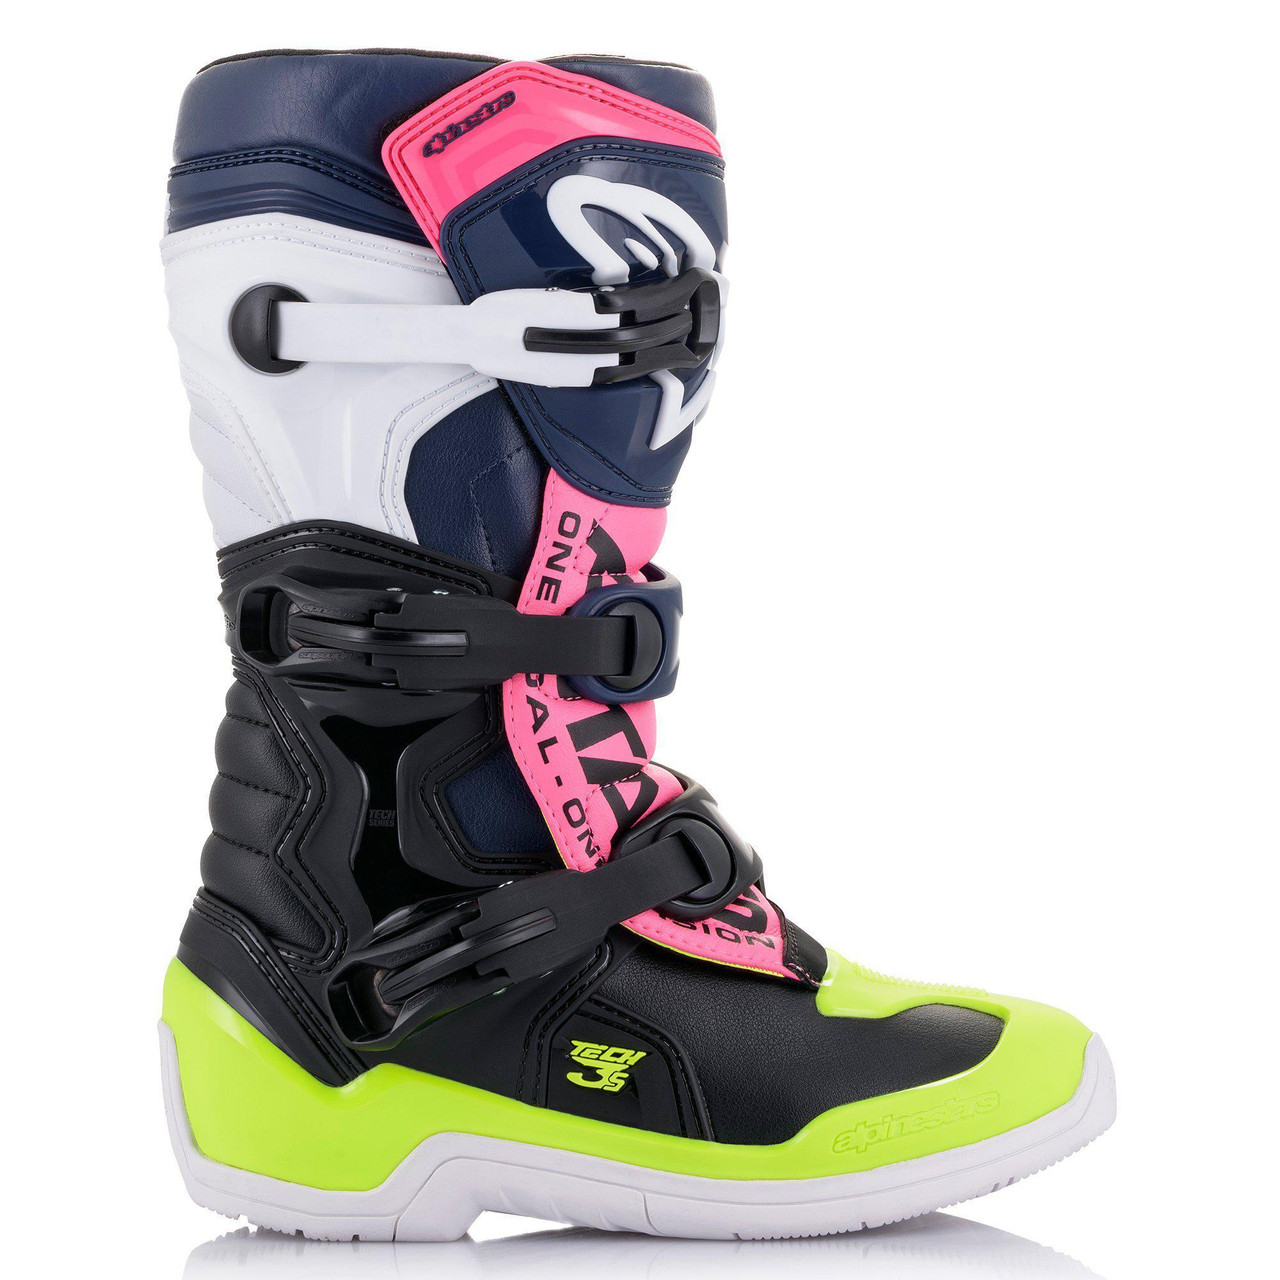 cd14570006bd04 Alpinestars Tech 3S Youth MX Offroad Boots. Price   171.40. Image 1